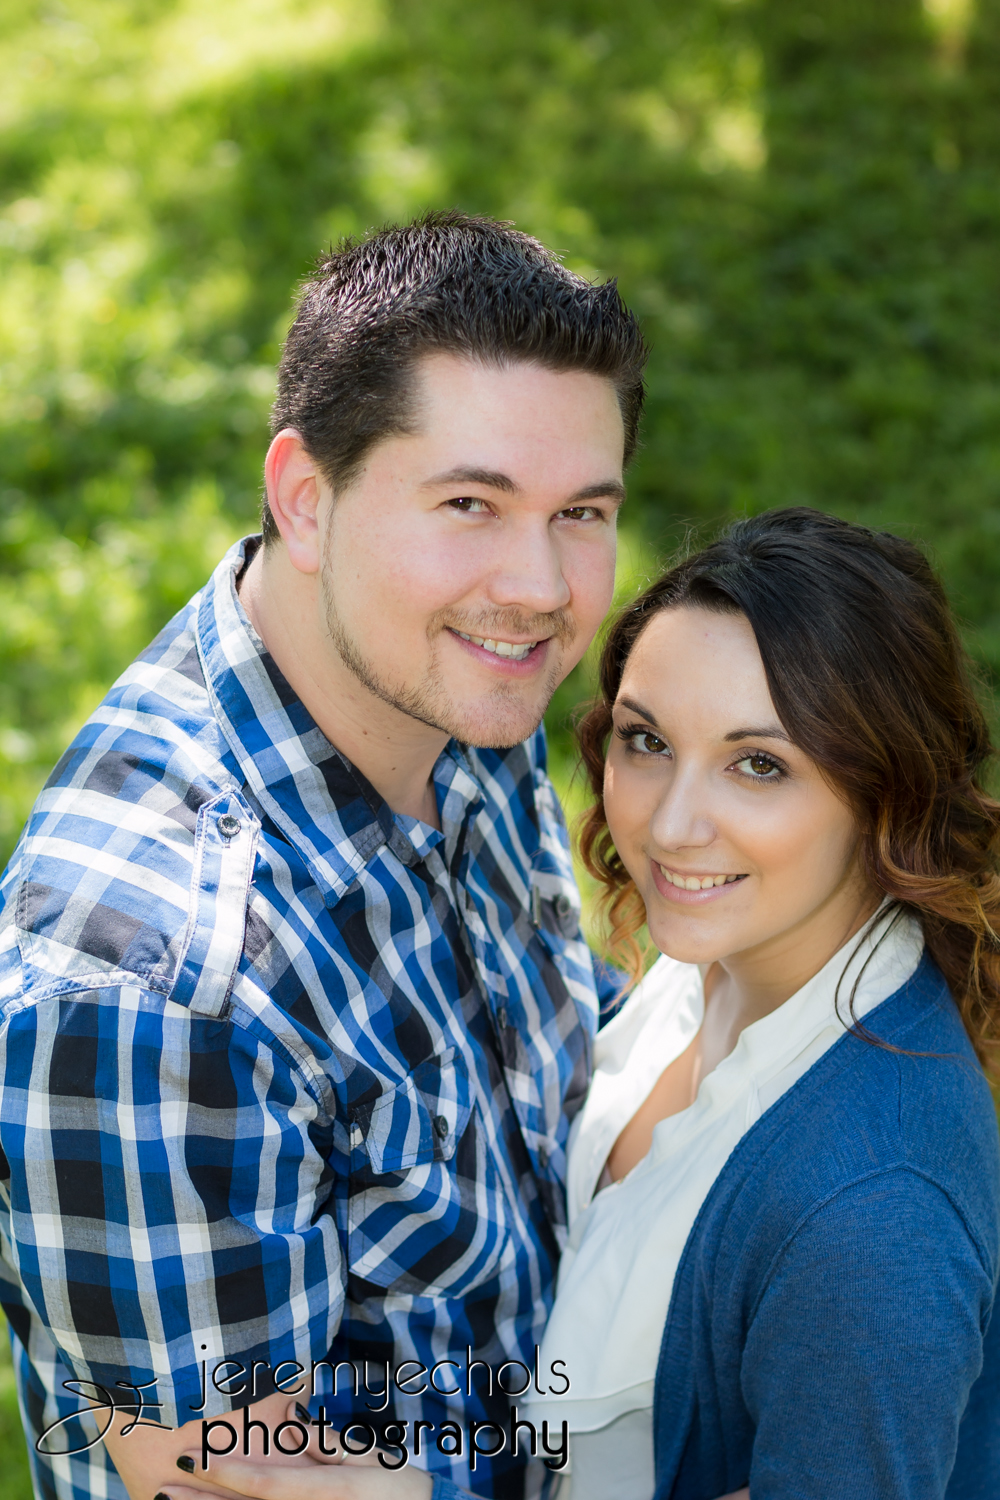 Corey_Carley_Normandy_Park_Cove_Engagement_Photography-155.jpg